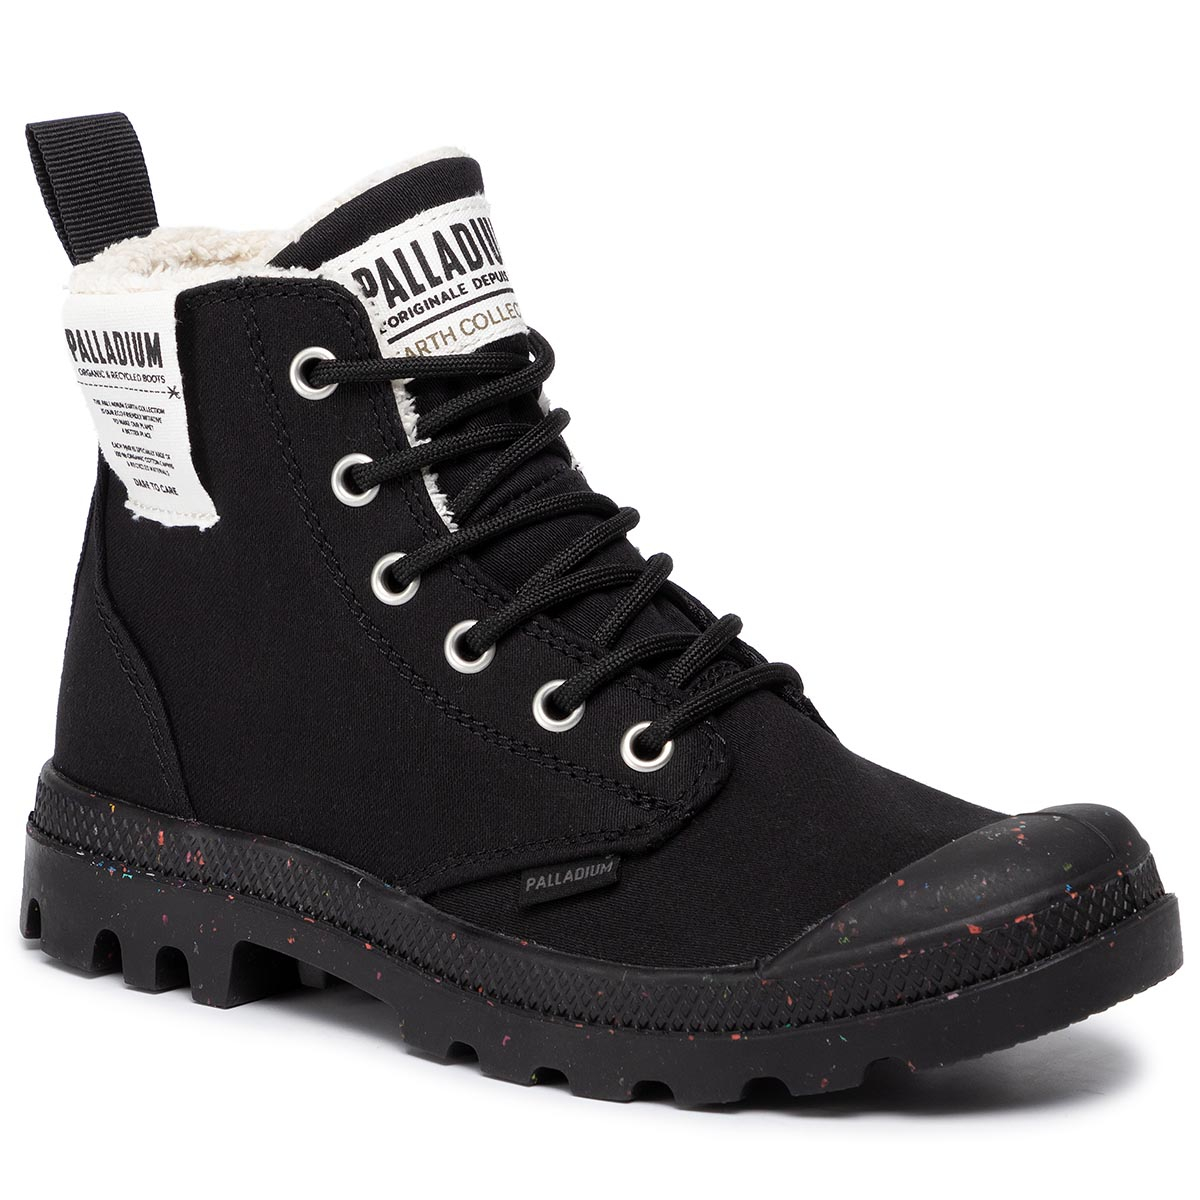 Trappers PALLADIUM - Pampa Earth 76437-008-M Black